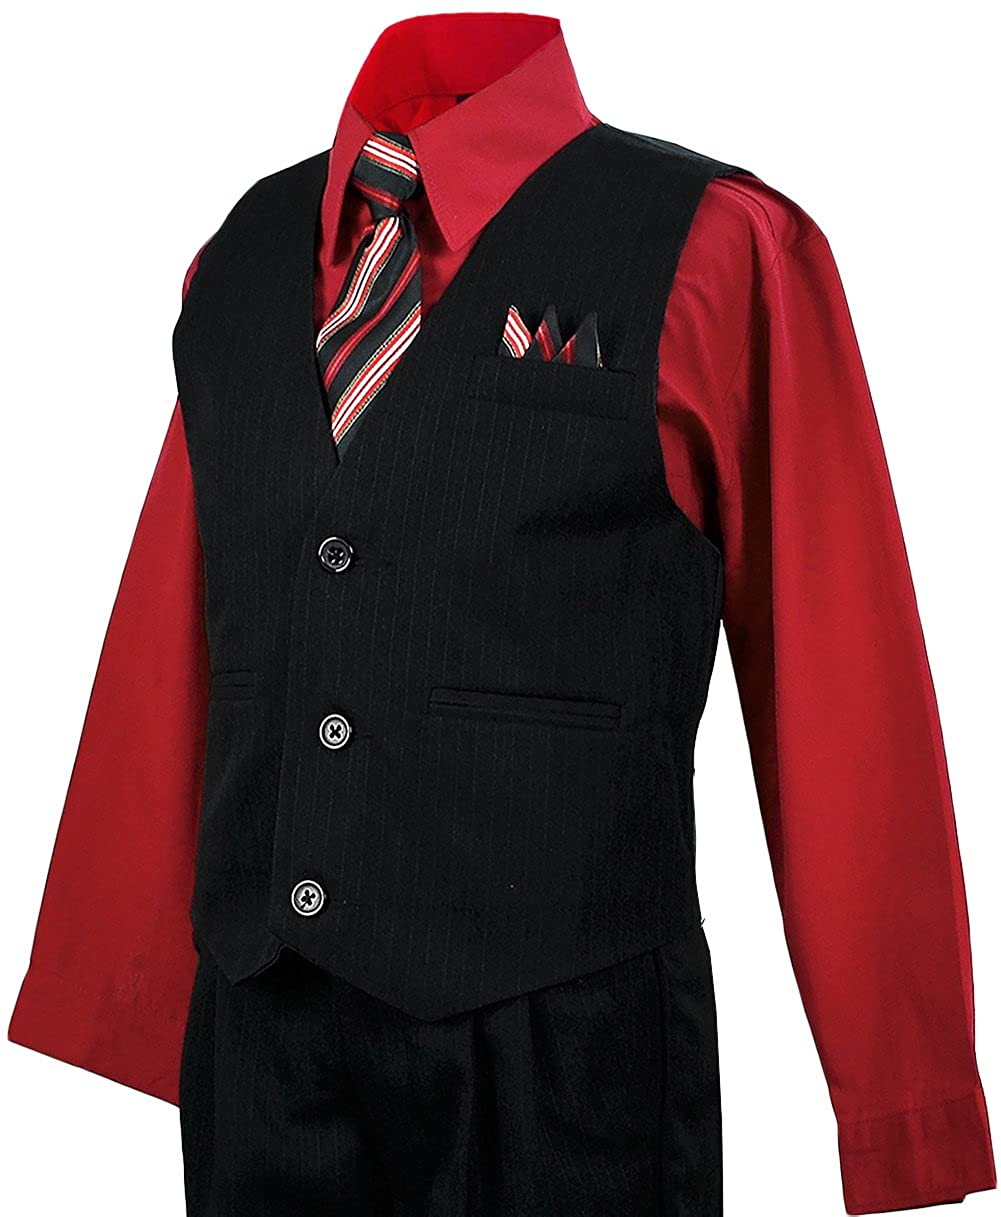 Boys Vest Suit Pinstripe Red Shirt Outfit Size 6